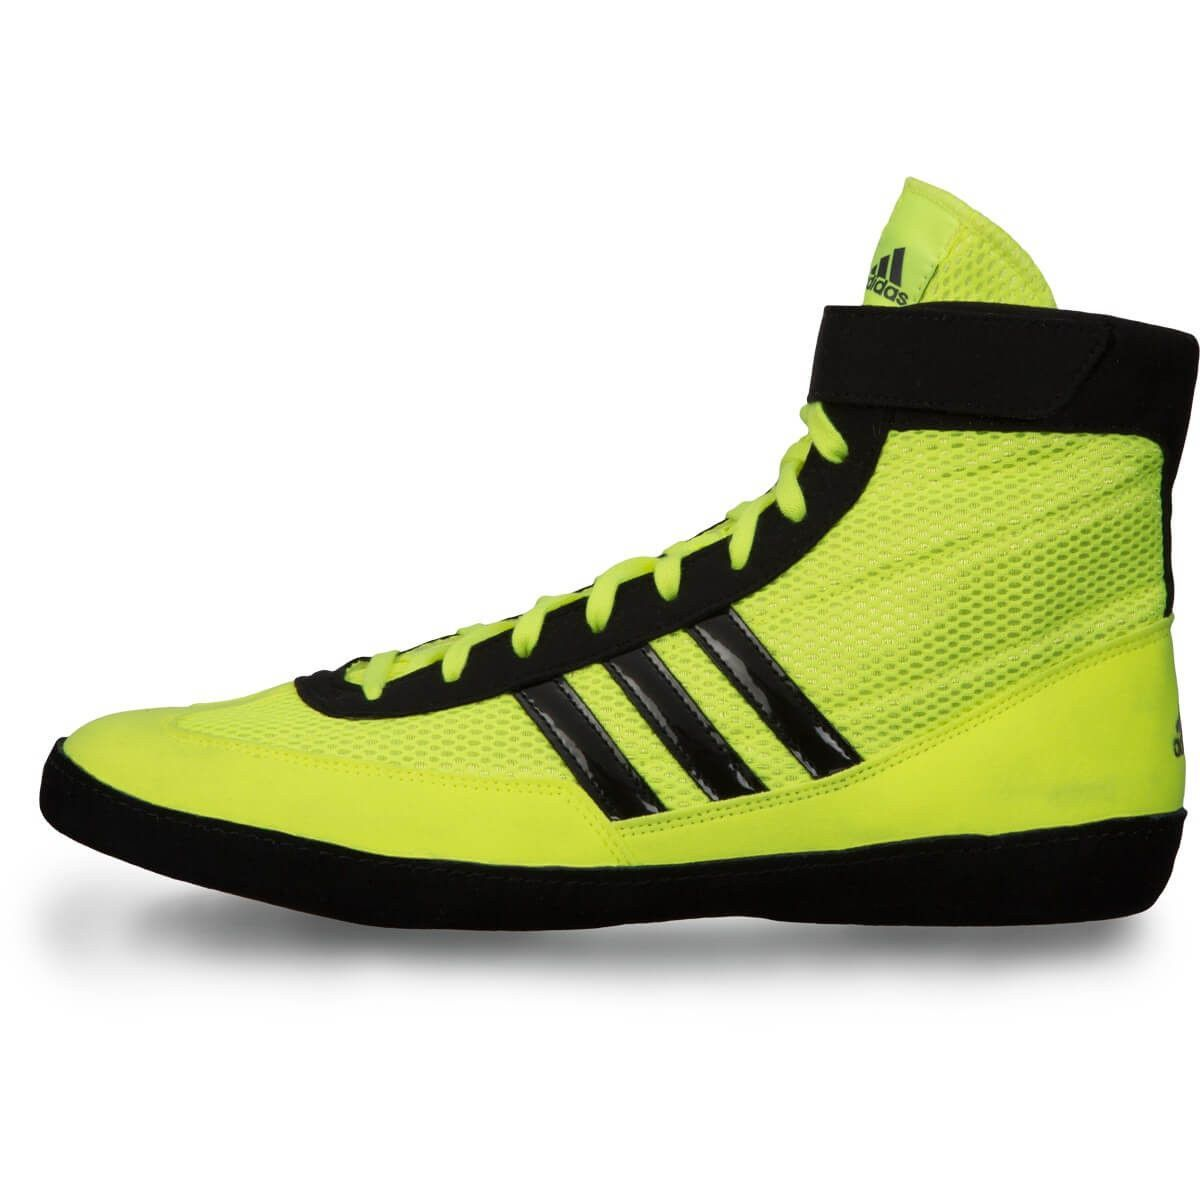 Adidas Combat Speed IV Super Boxing Shoes | Products